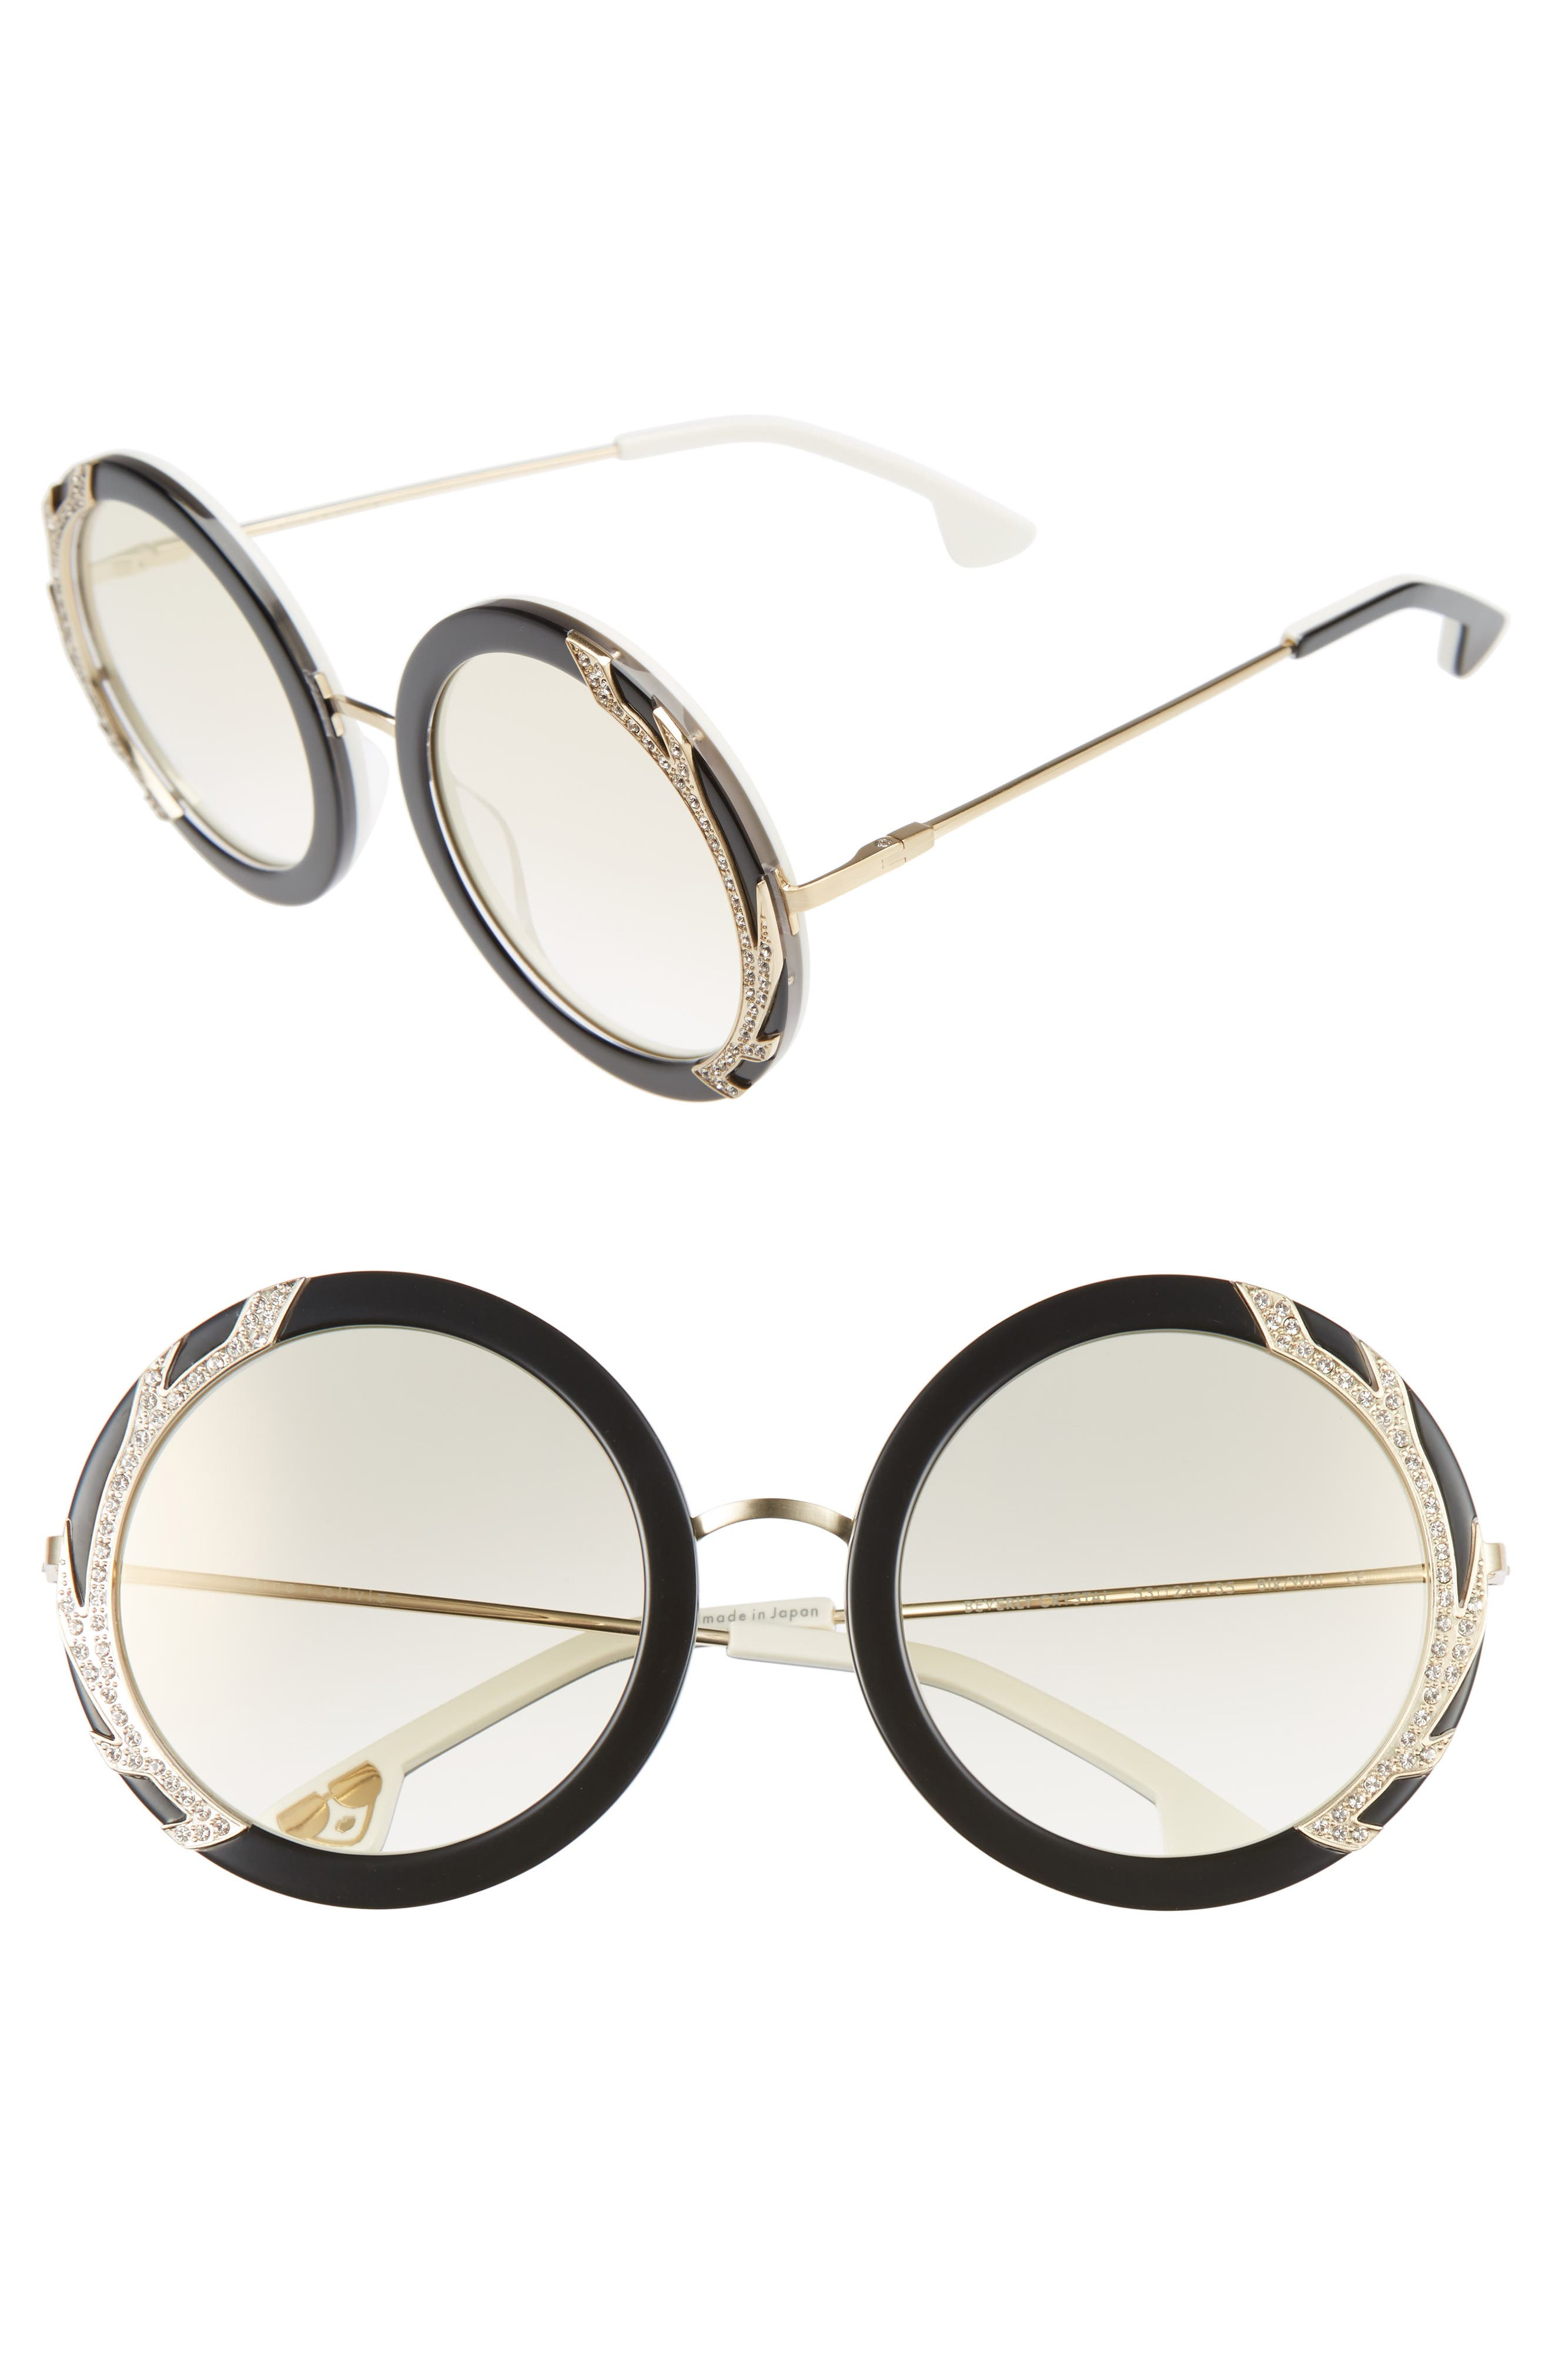 Beverly Crystal 53mm Special Fit Round Sunglasses,                         Main,                         color, 001